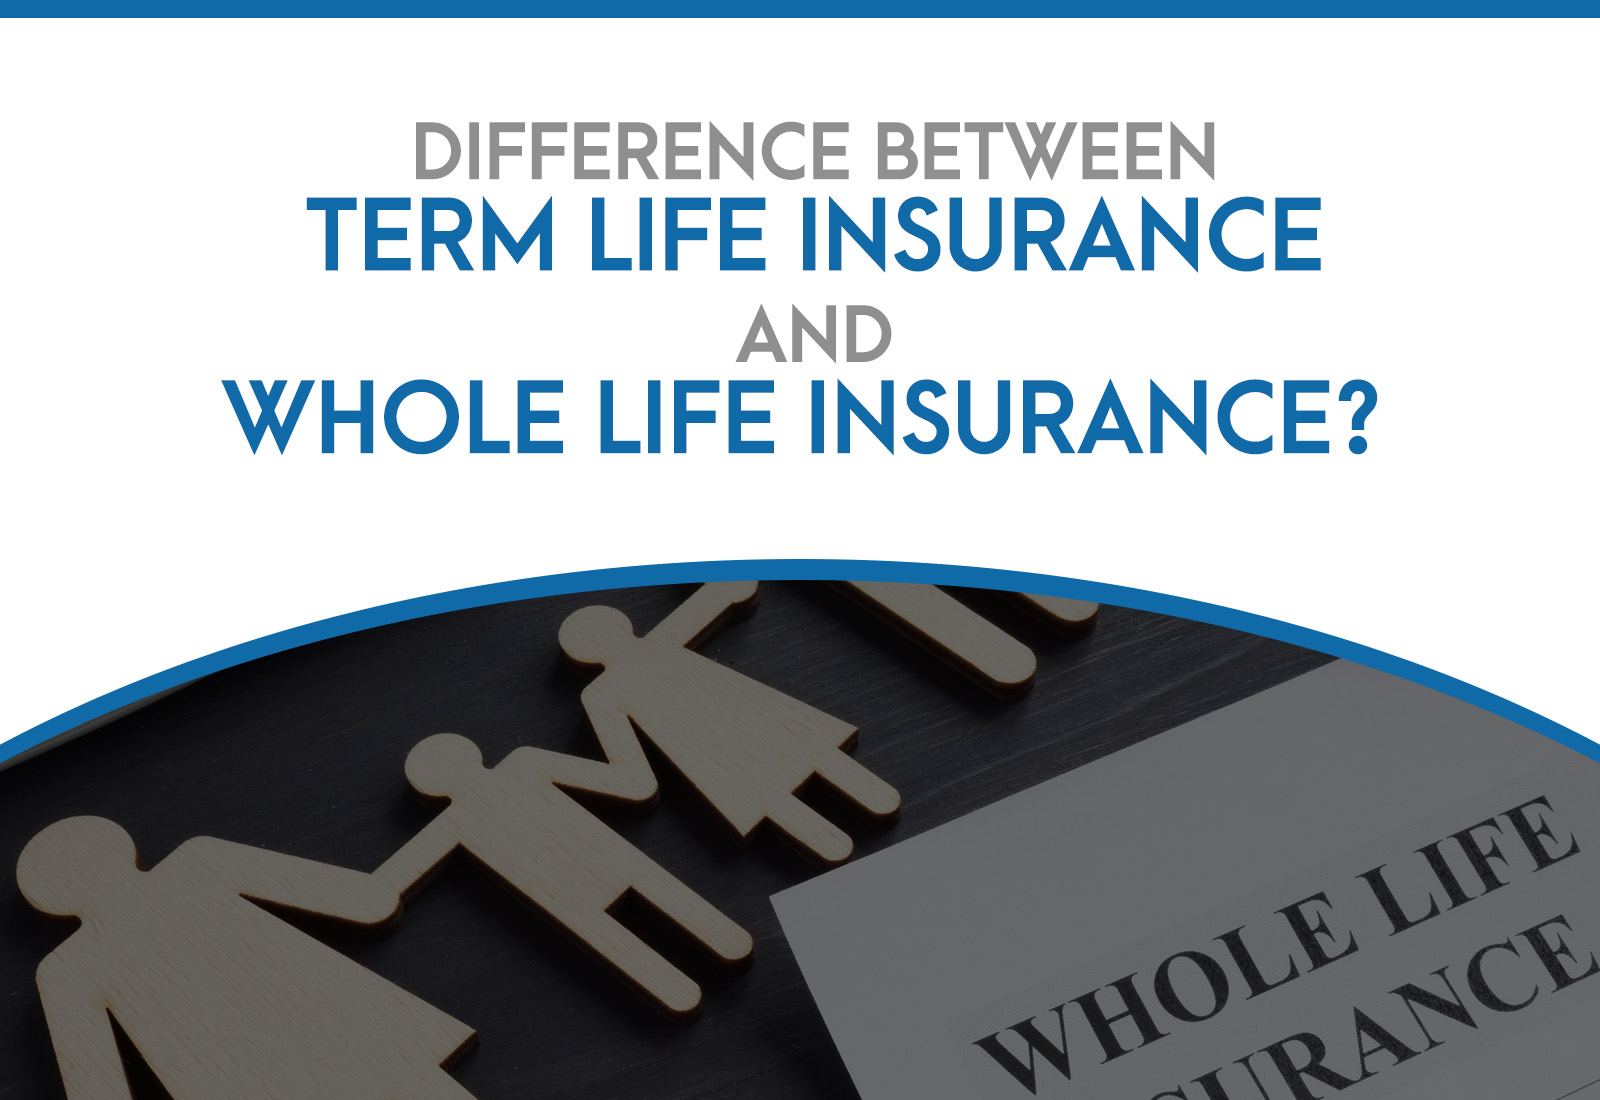 The Most Prominent Differences Between Term Life Insurance and Whole Life Insurance